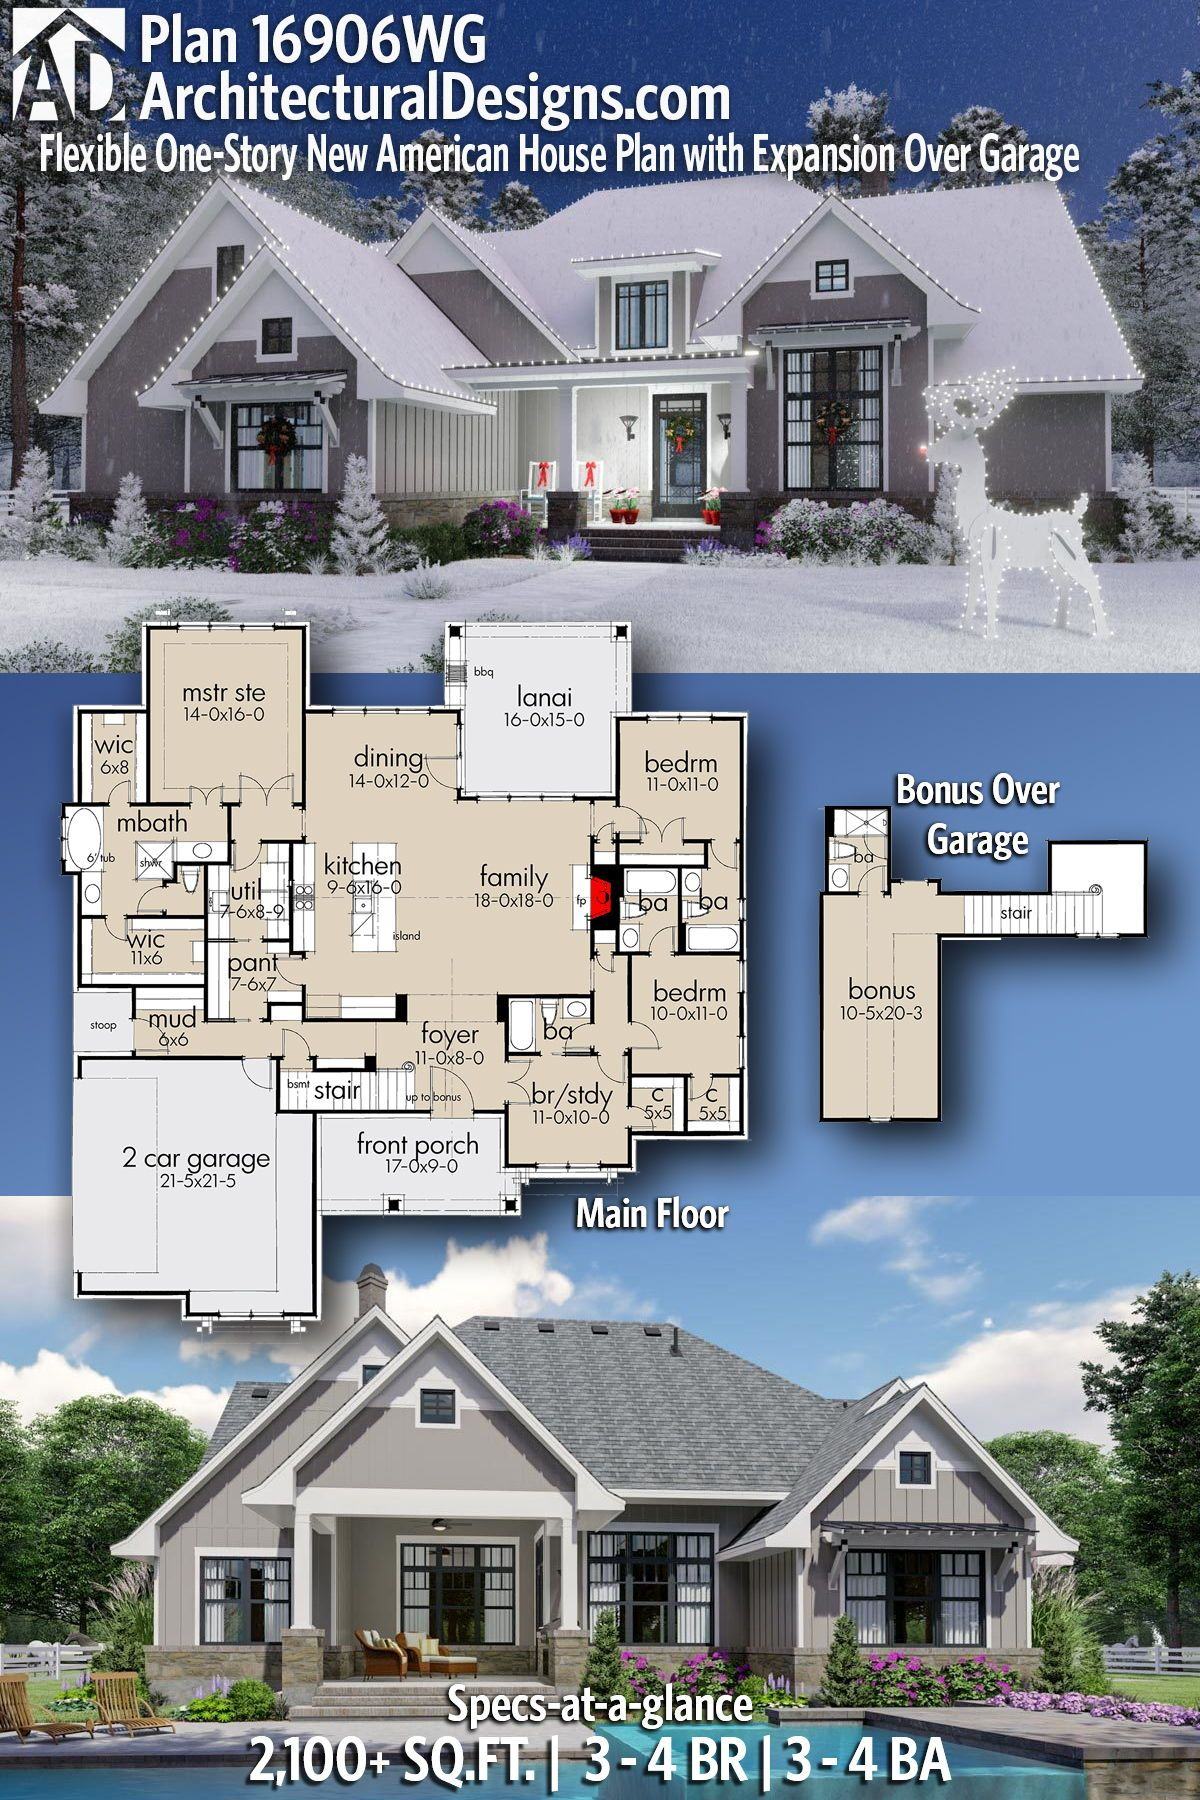 Plan 16906wg Flexible One Story New American House Plan With Expansion Over Garage American Houses Farmhouse Plans House Architecture Design